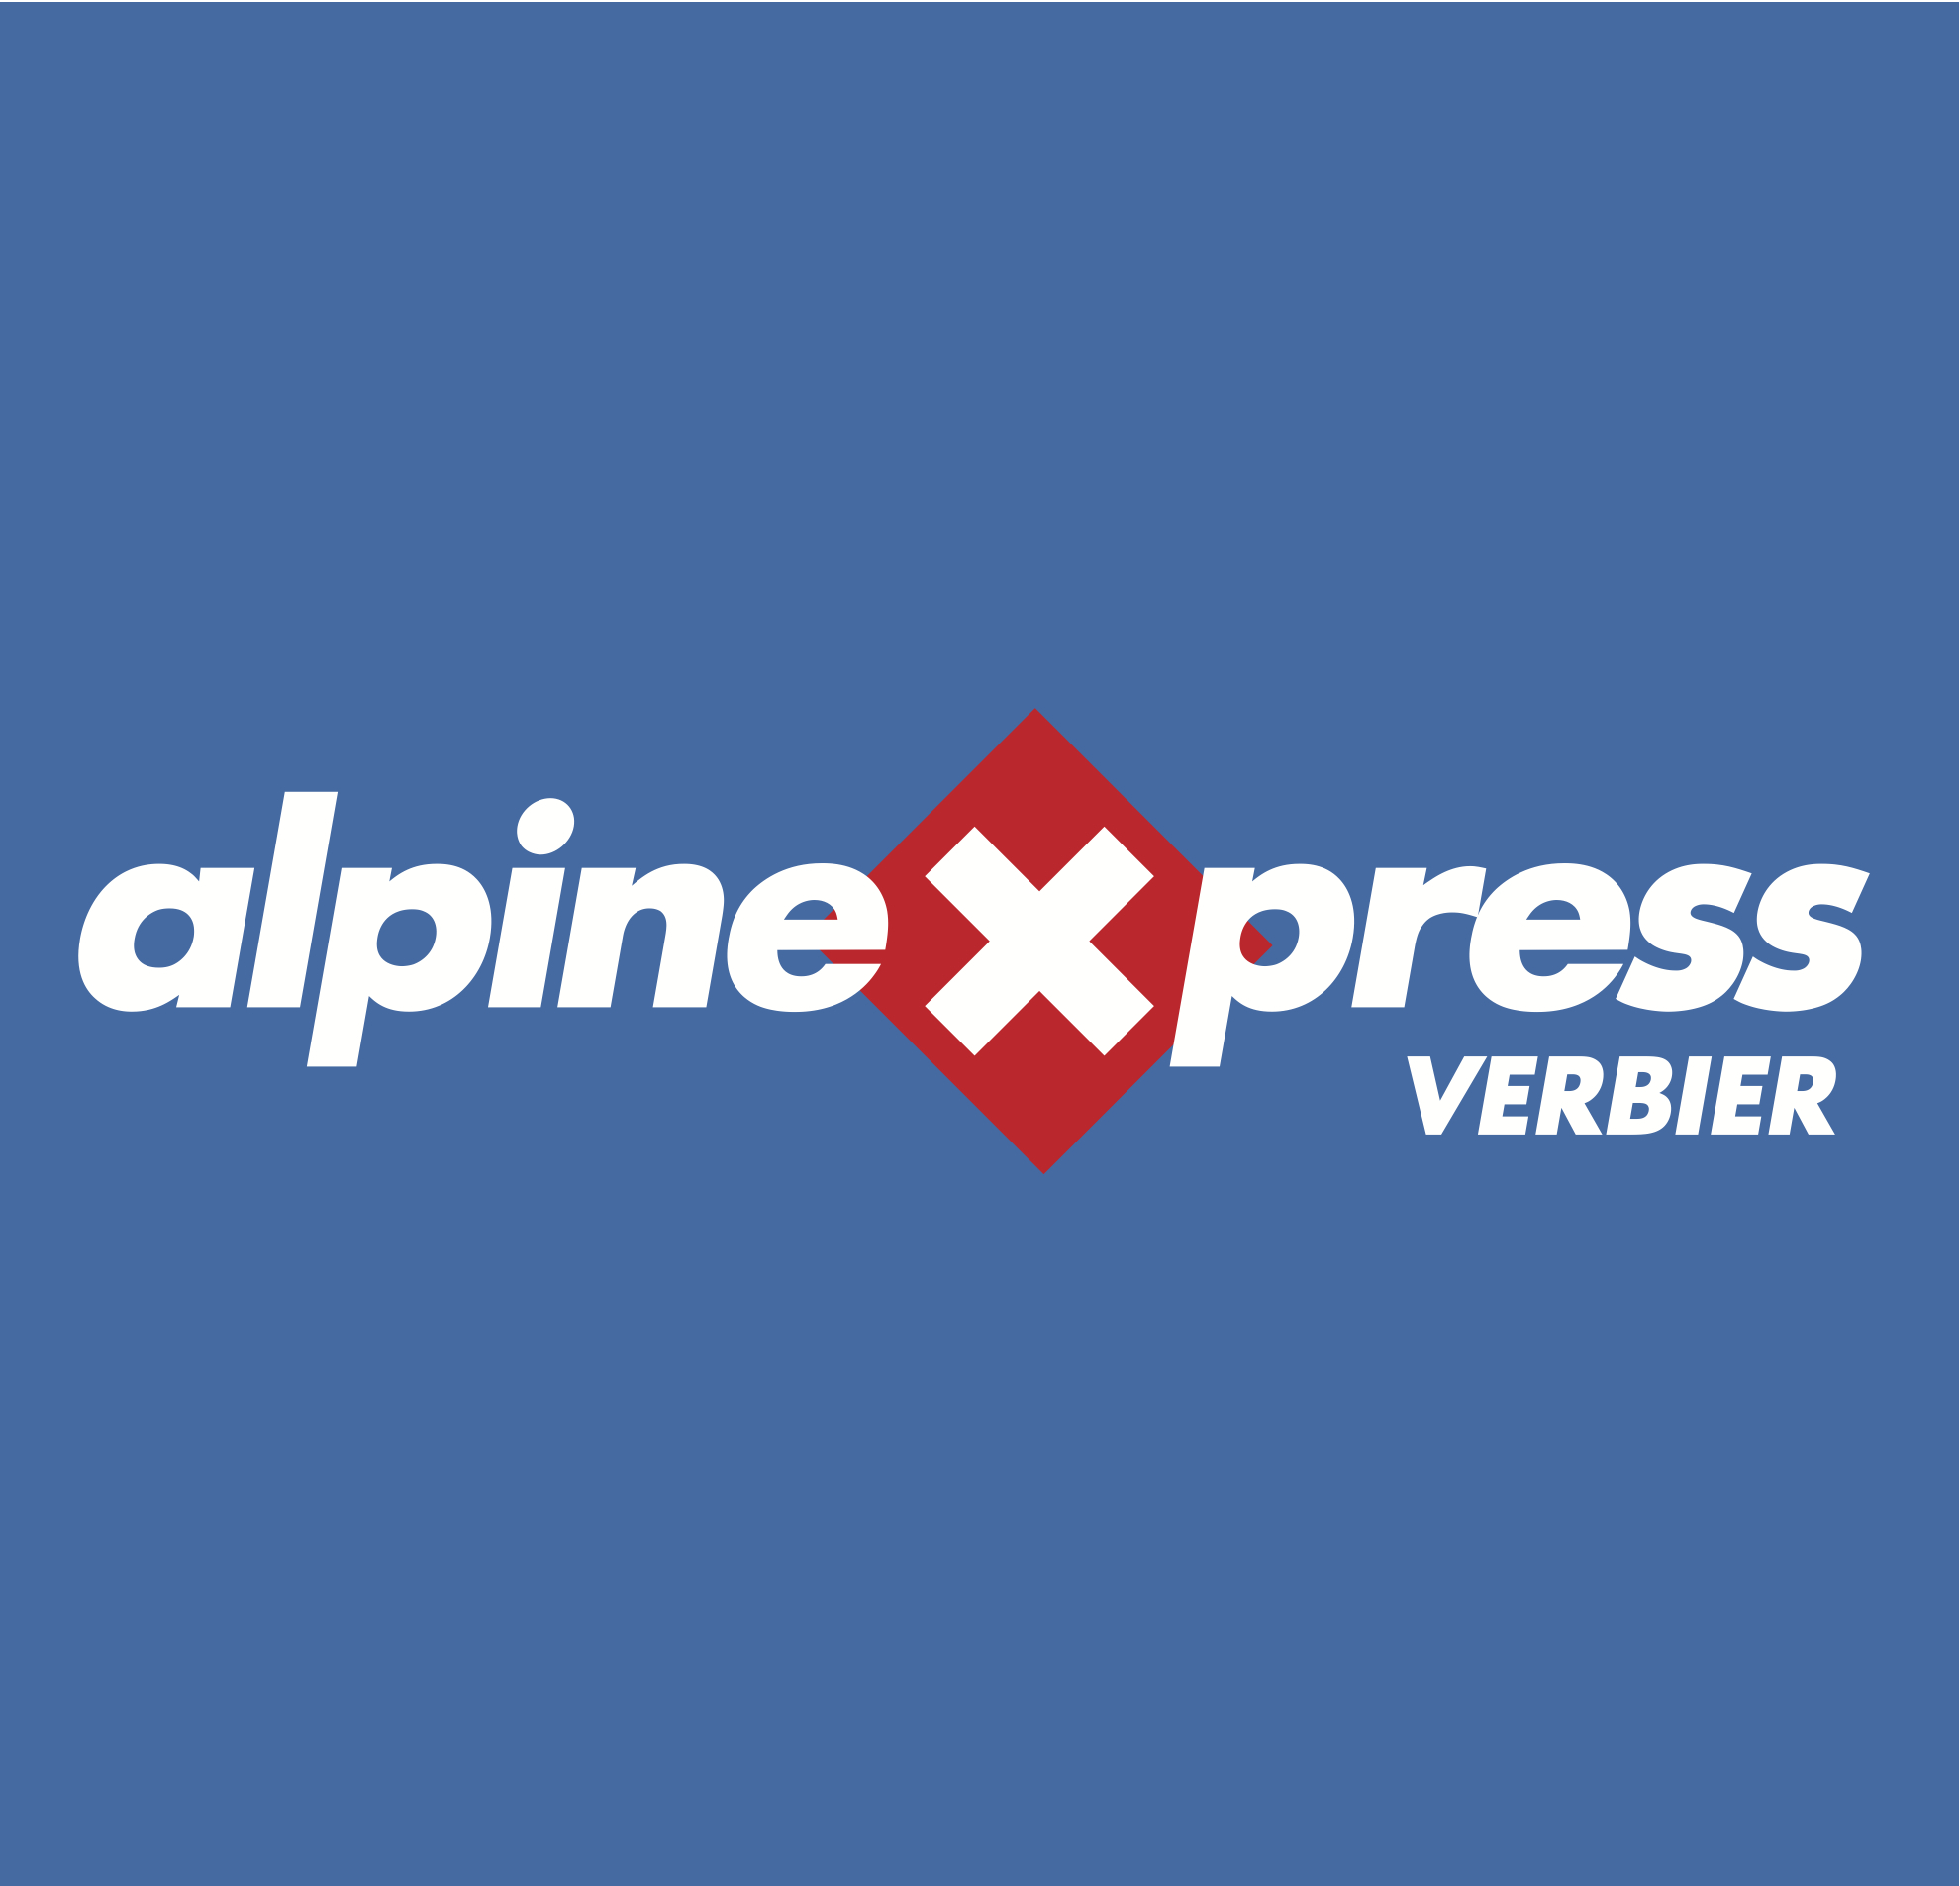 AlpineXpress Airport Transfers, The Verbier Specialists main photo.